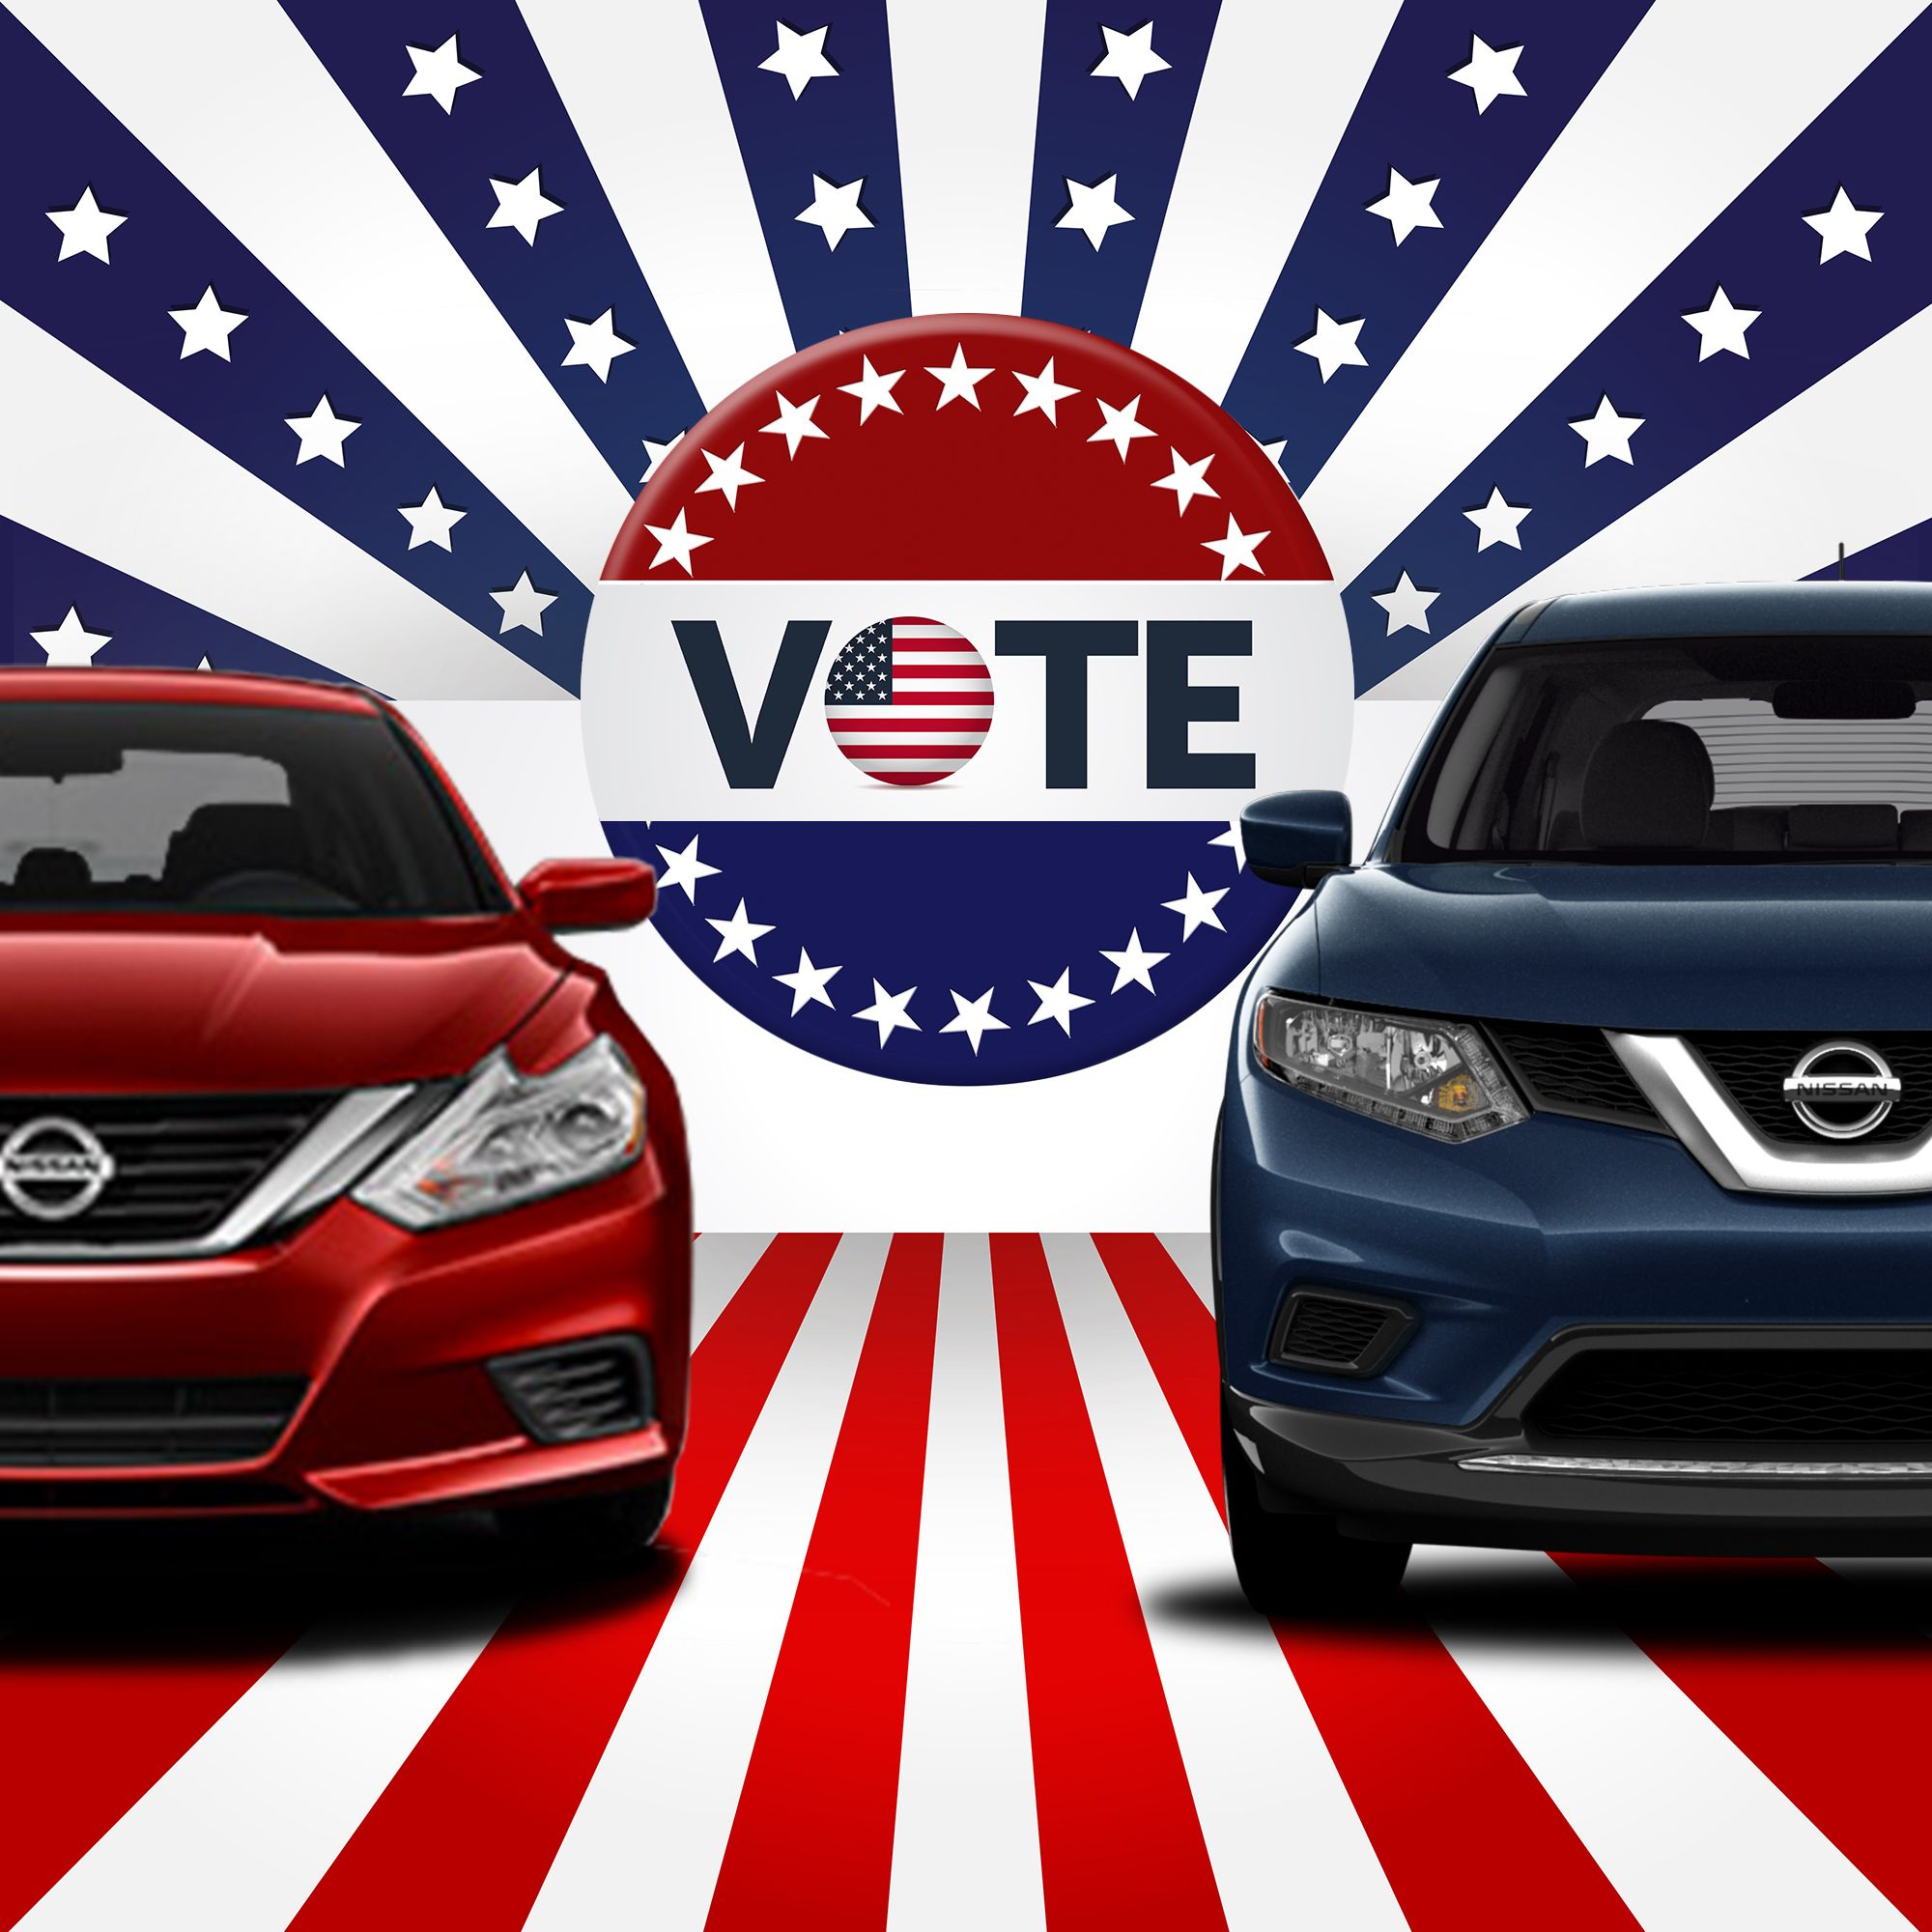 Your Choice Is Easy At Mossy Nissan Electionday Votenissan Winner Country Flags Nissan Fun